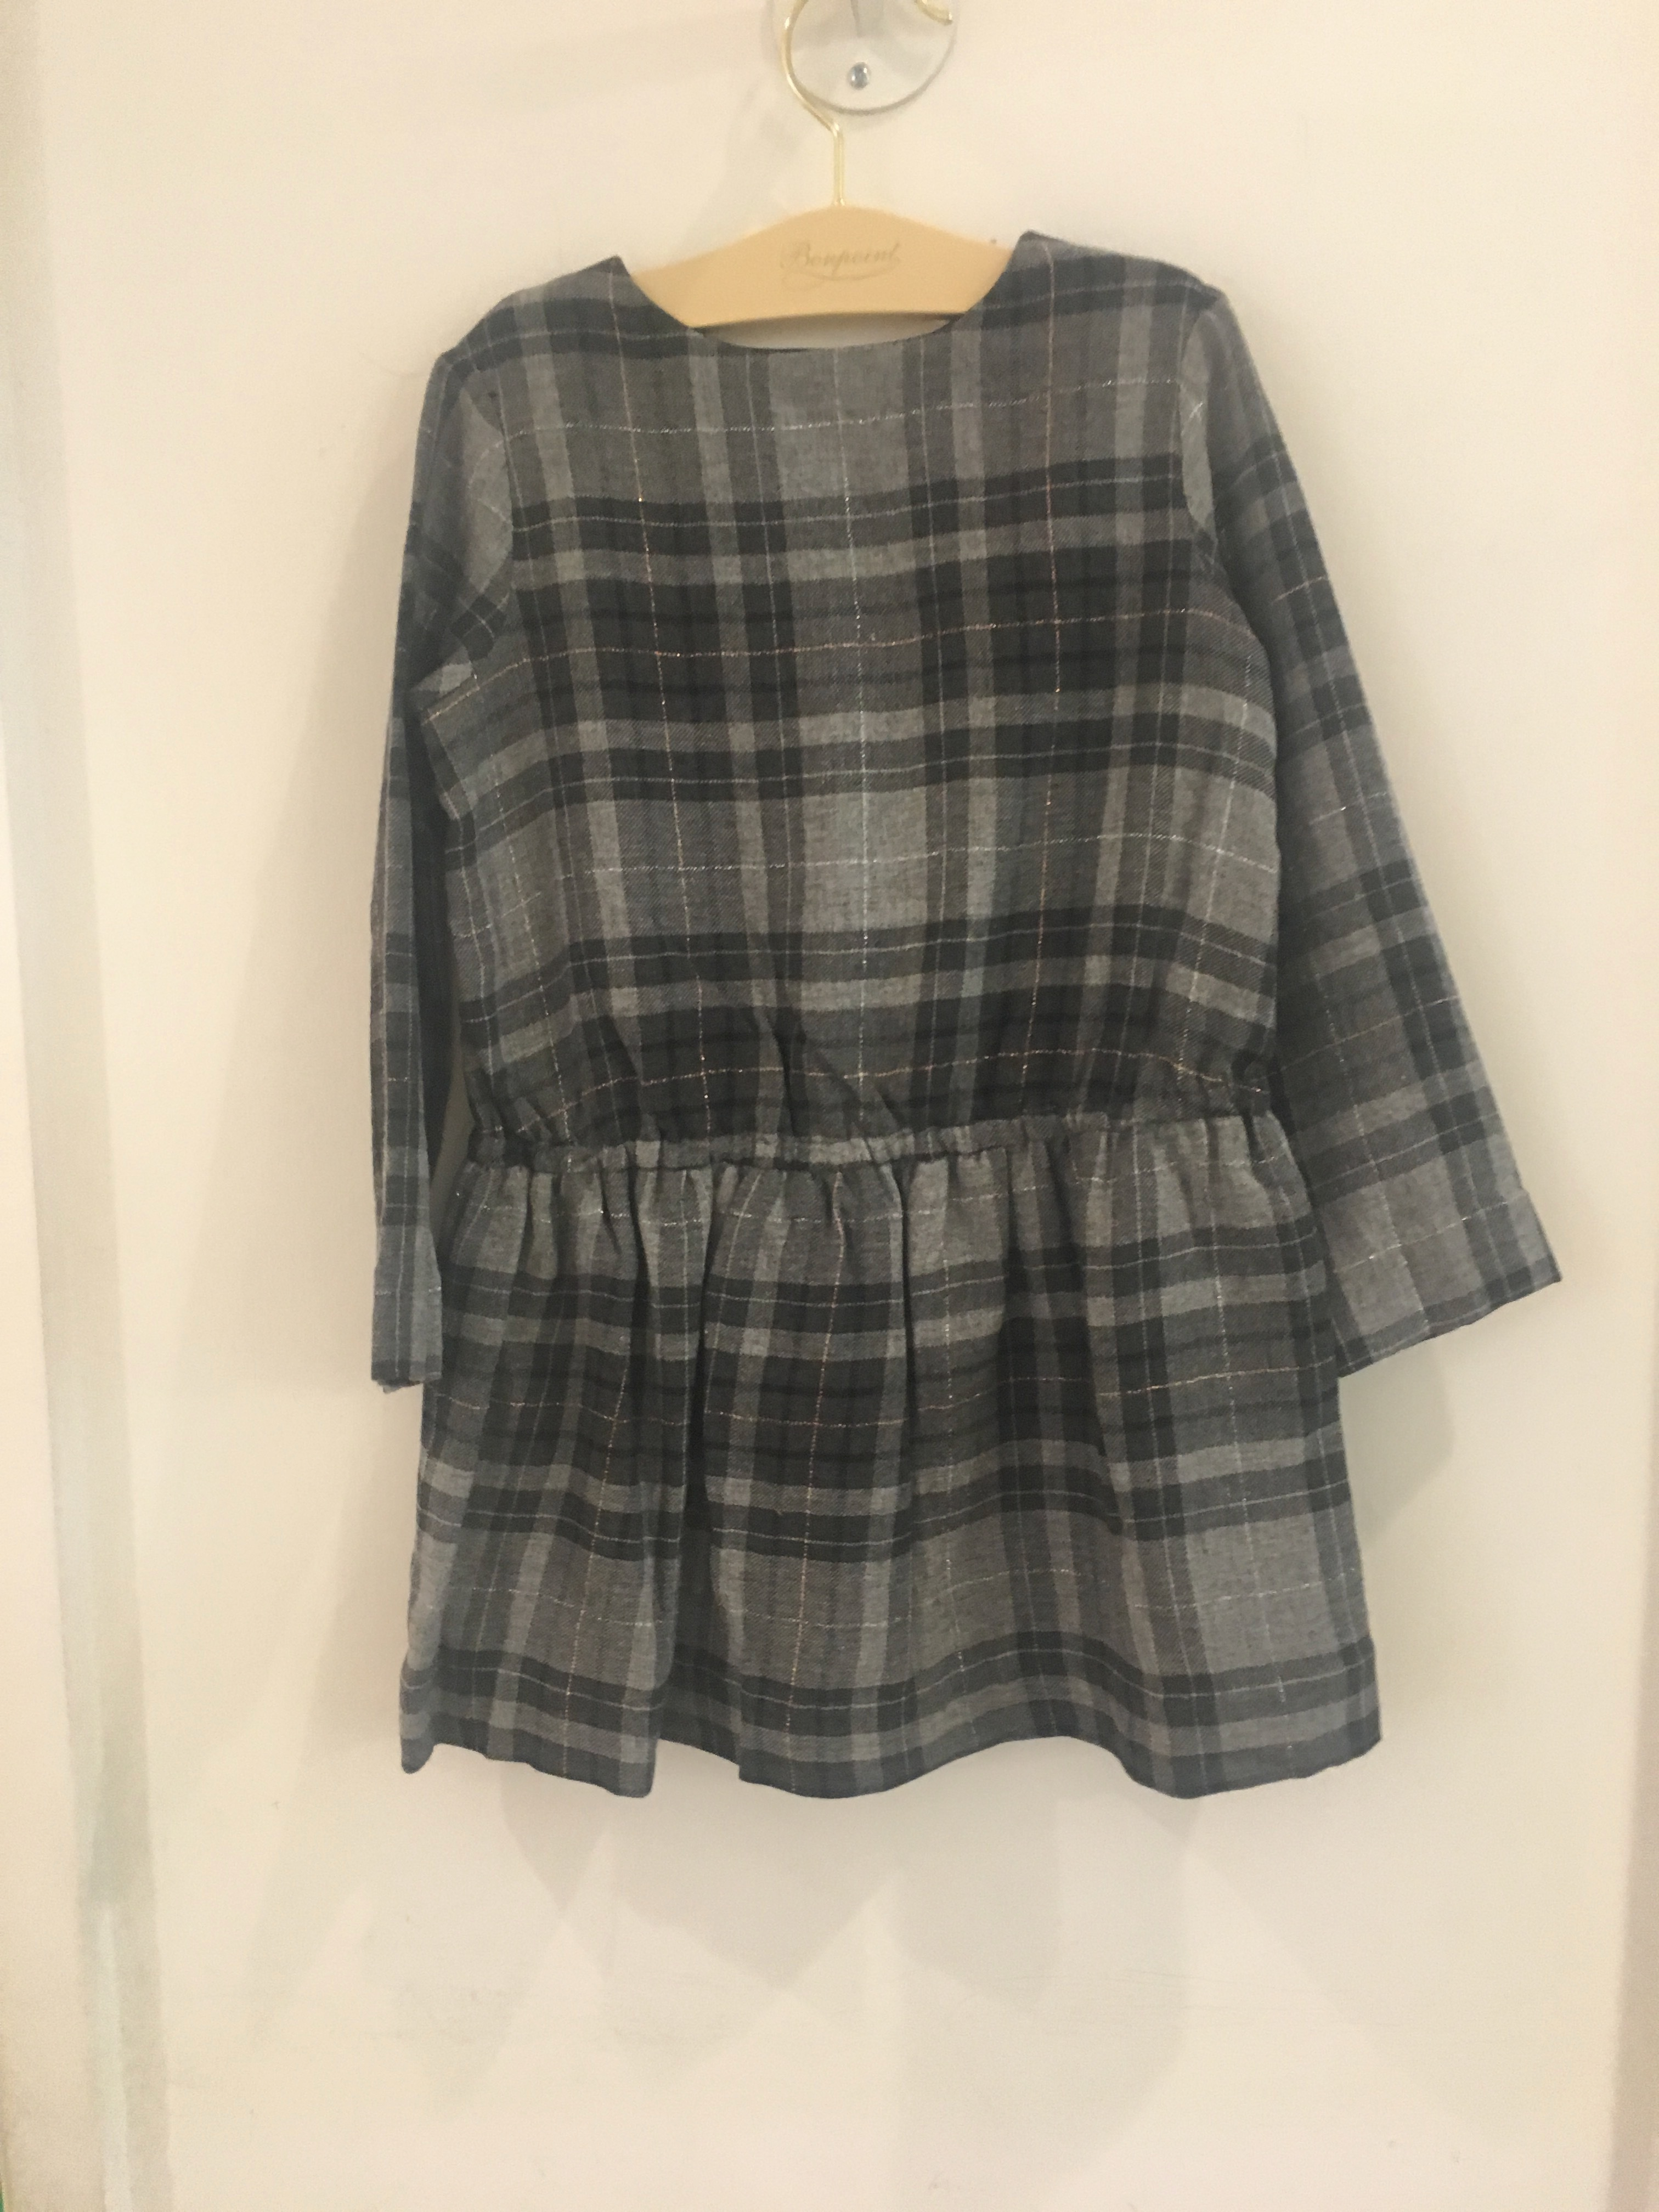 AW17☆FILLE ワンピースFIONA グレーチェック3.4A